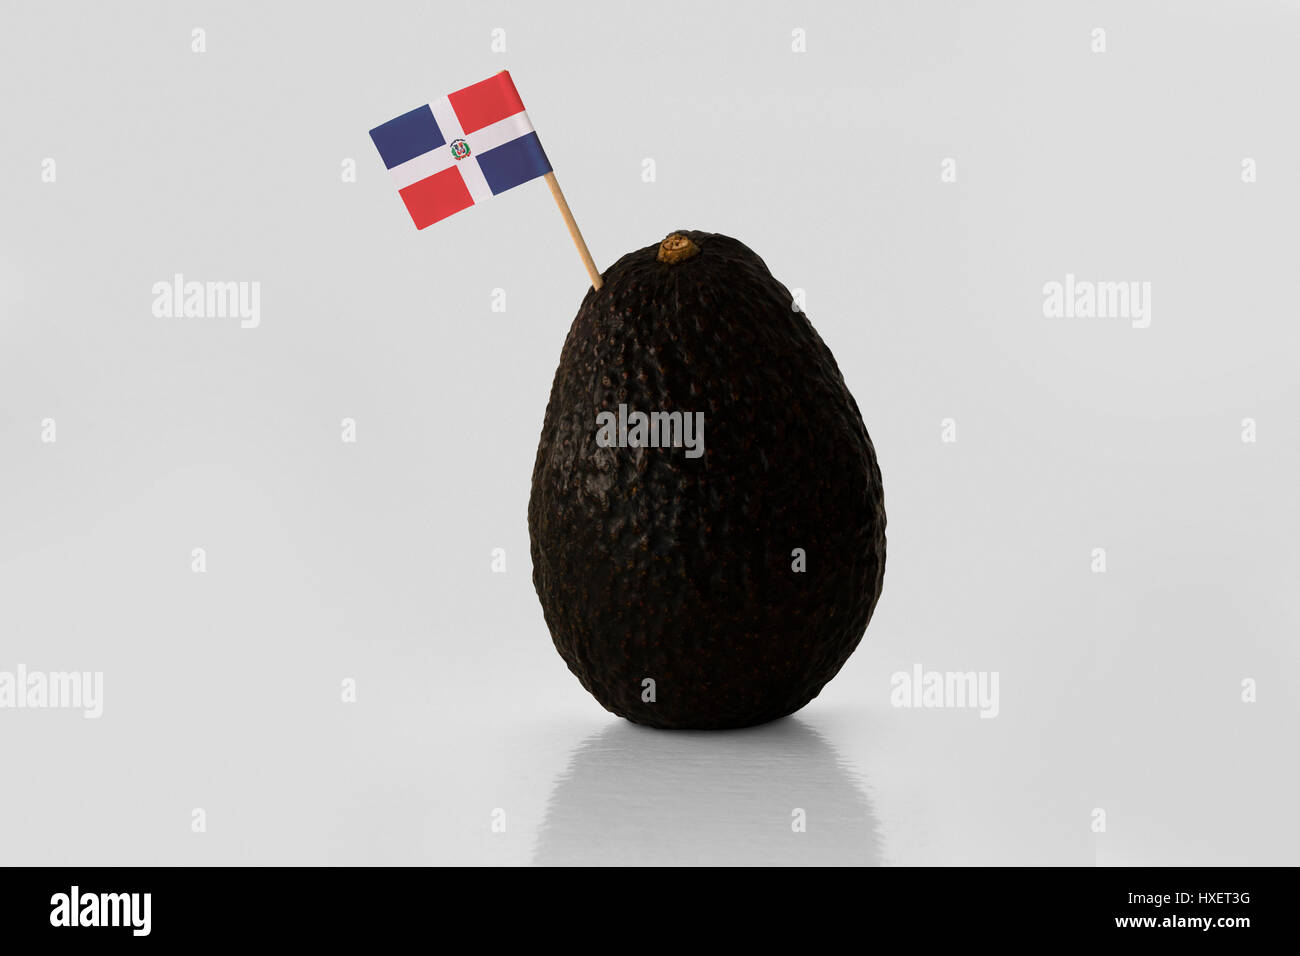 Isolated avocado with Dominican Republic flag - Stock Image